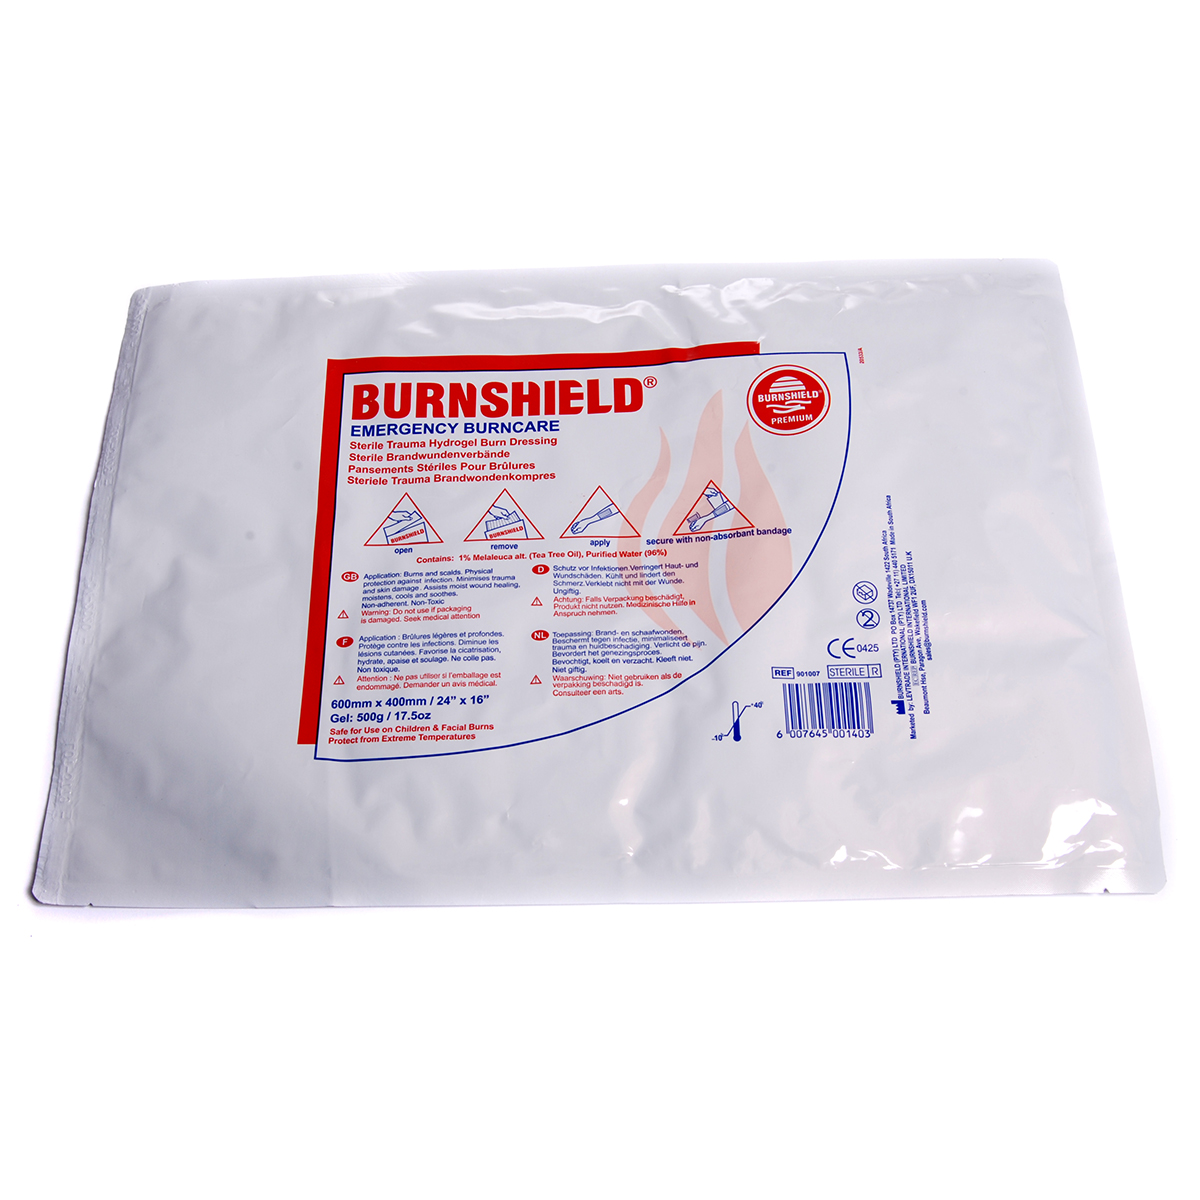 60cm x 40cm Single Burnshield® Dressing